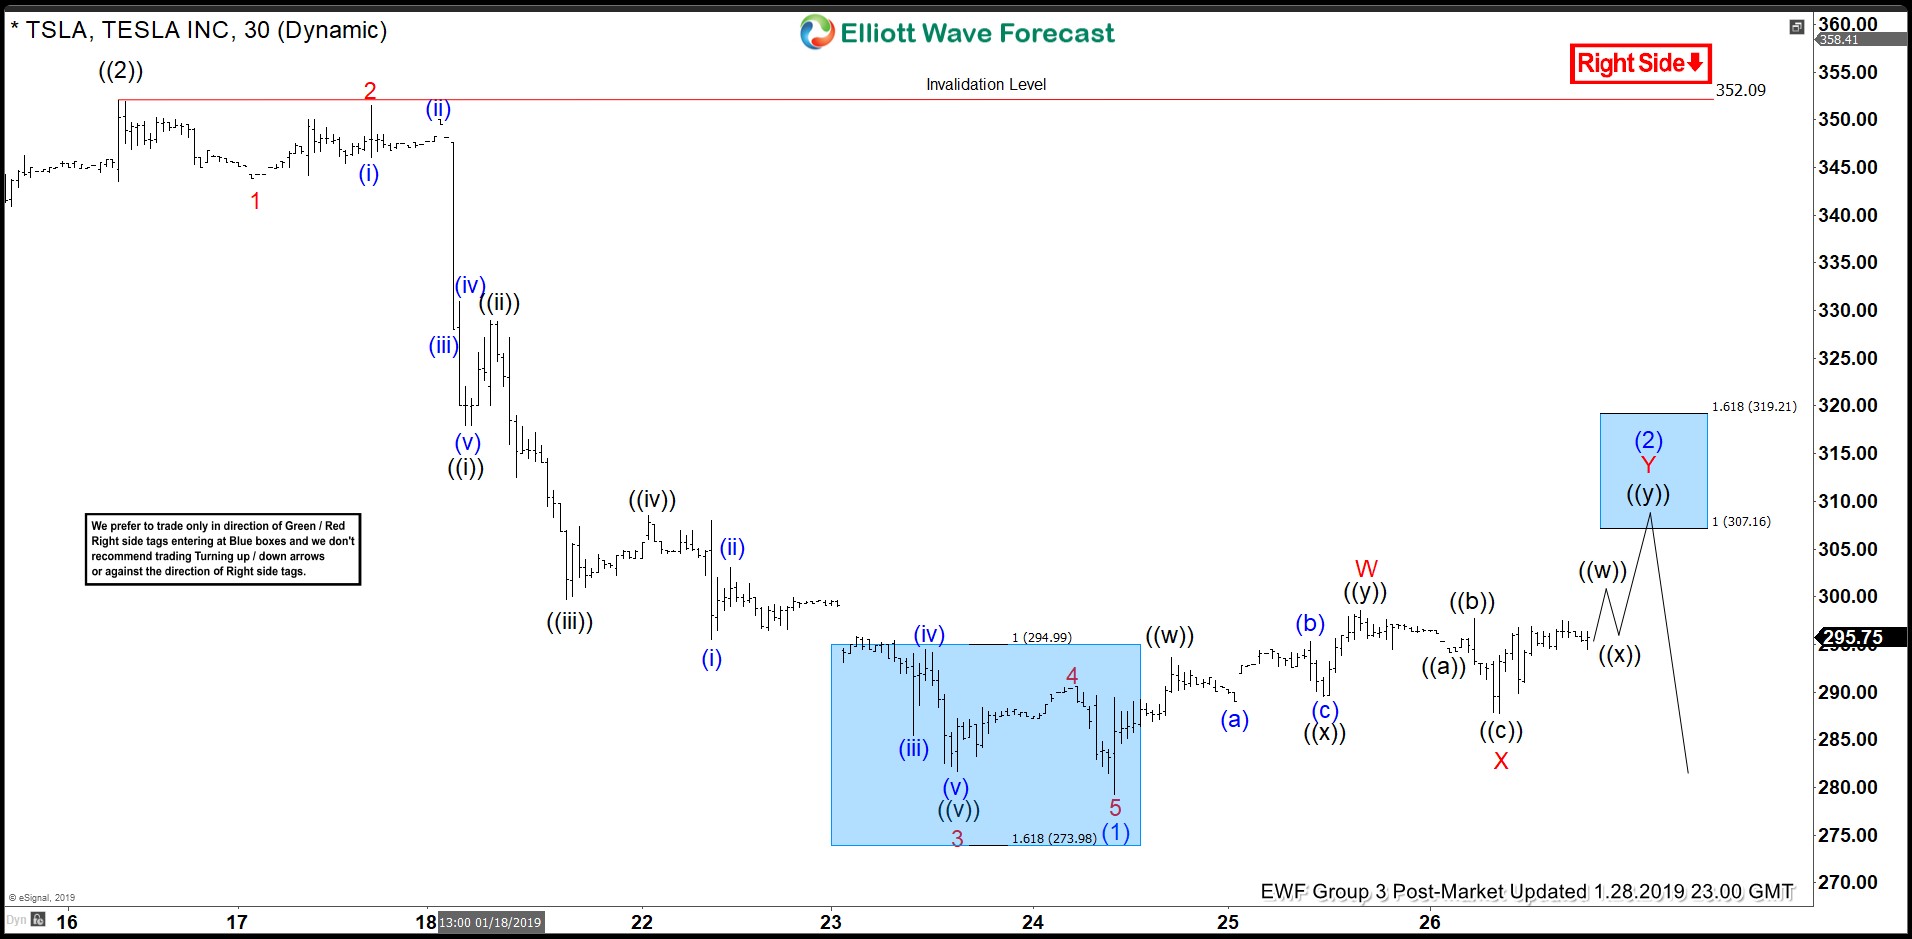 Elliott Wave View Expects Tesla Rally to Fail